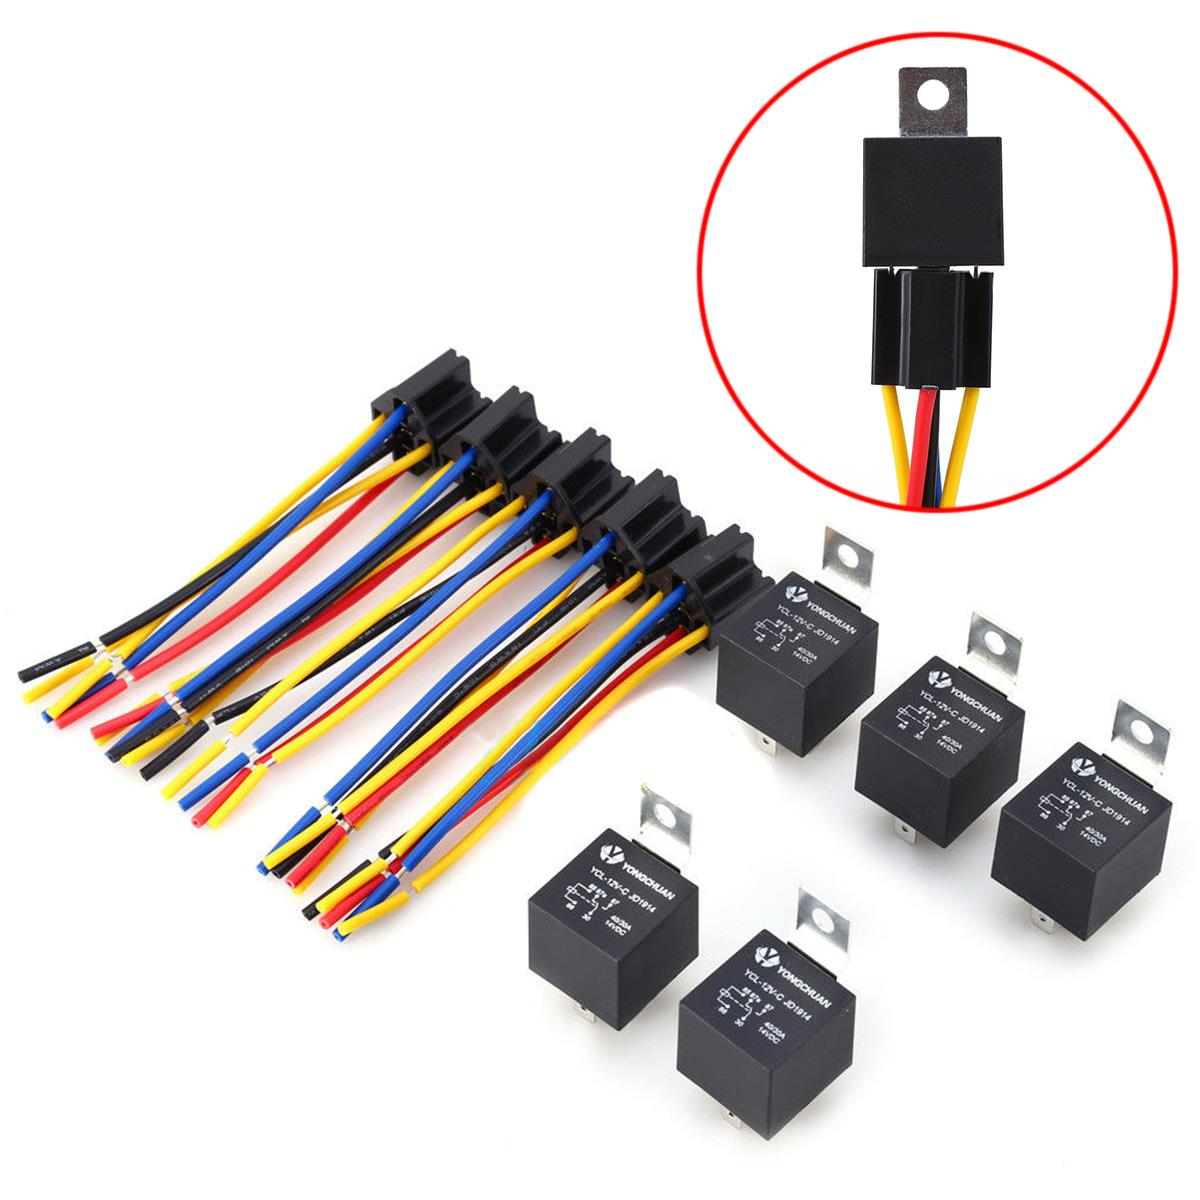 5 Set DC 12V 40A AMP Relay - Socket SPDT 5 Pin 5 Wire YCL-12,可领取元淘宝优惠券